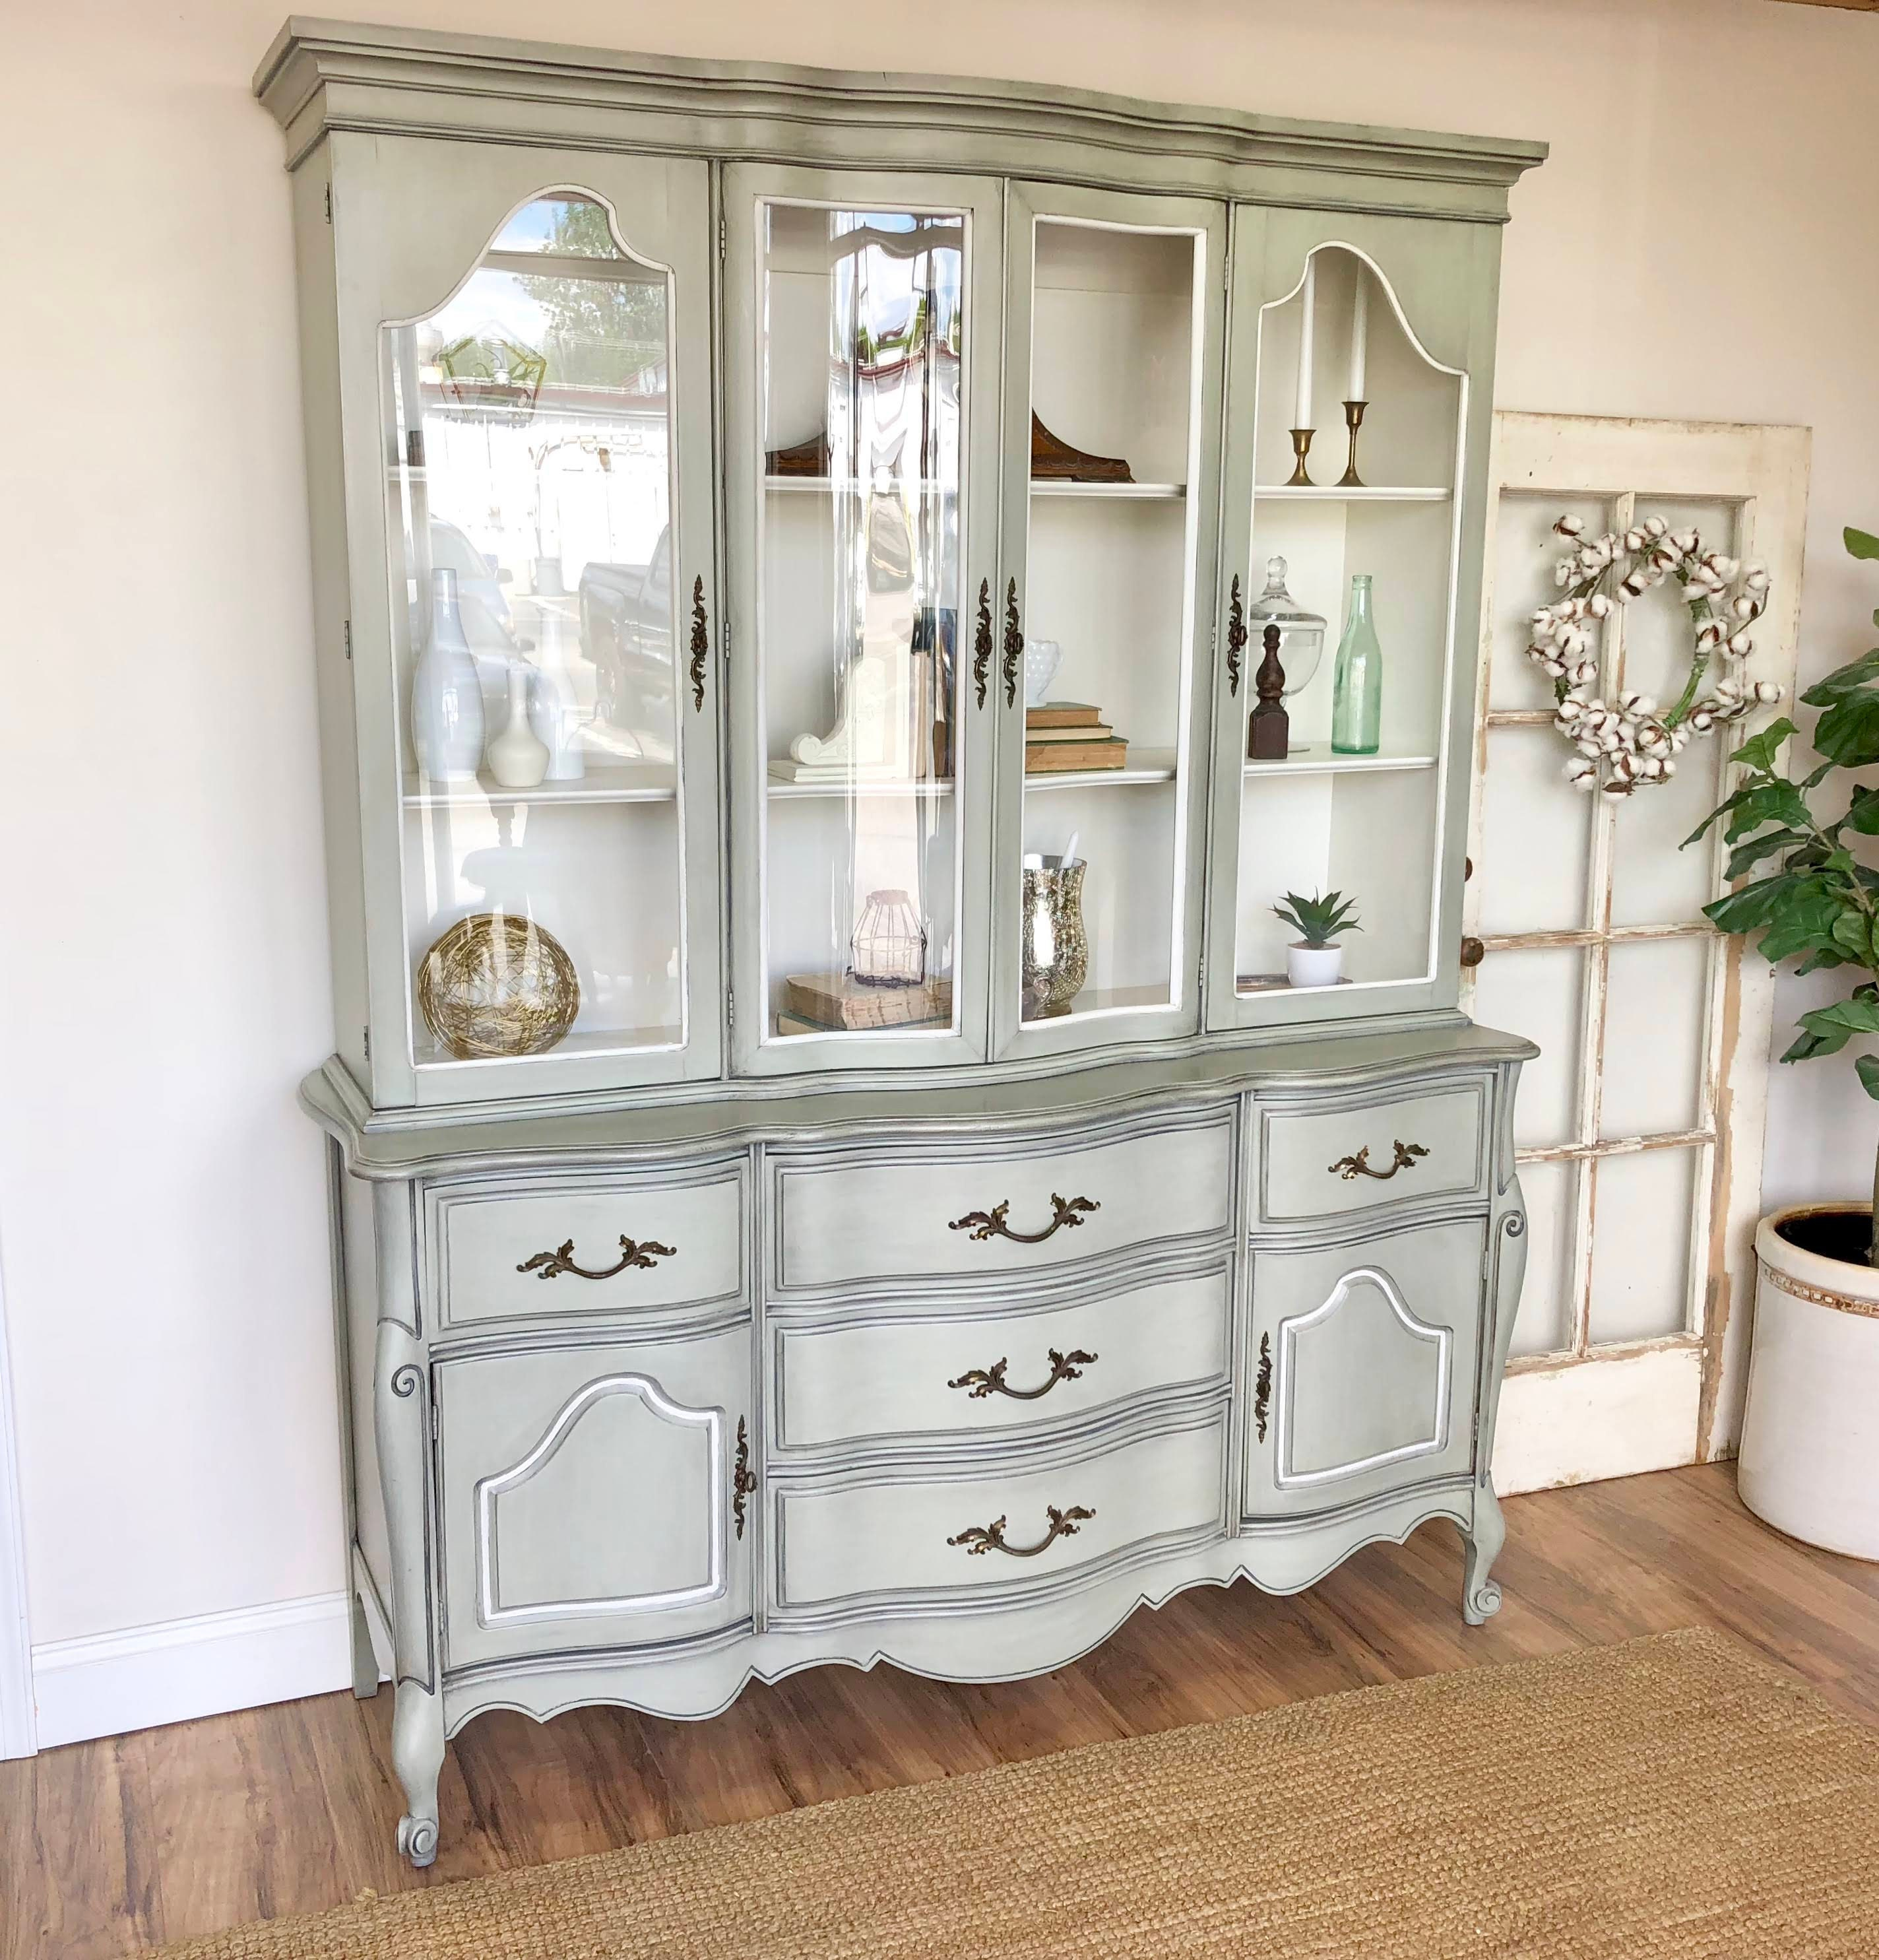 French Provincial Vintage China Cabinet   Shabby Chic Furniture   Painted  Dining Room Breakfront Cabinet For Storage Of Dinnerware